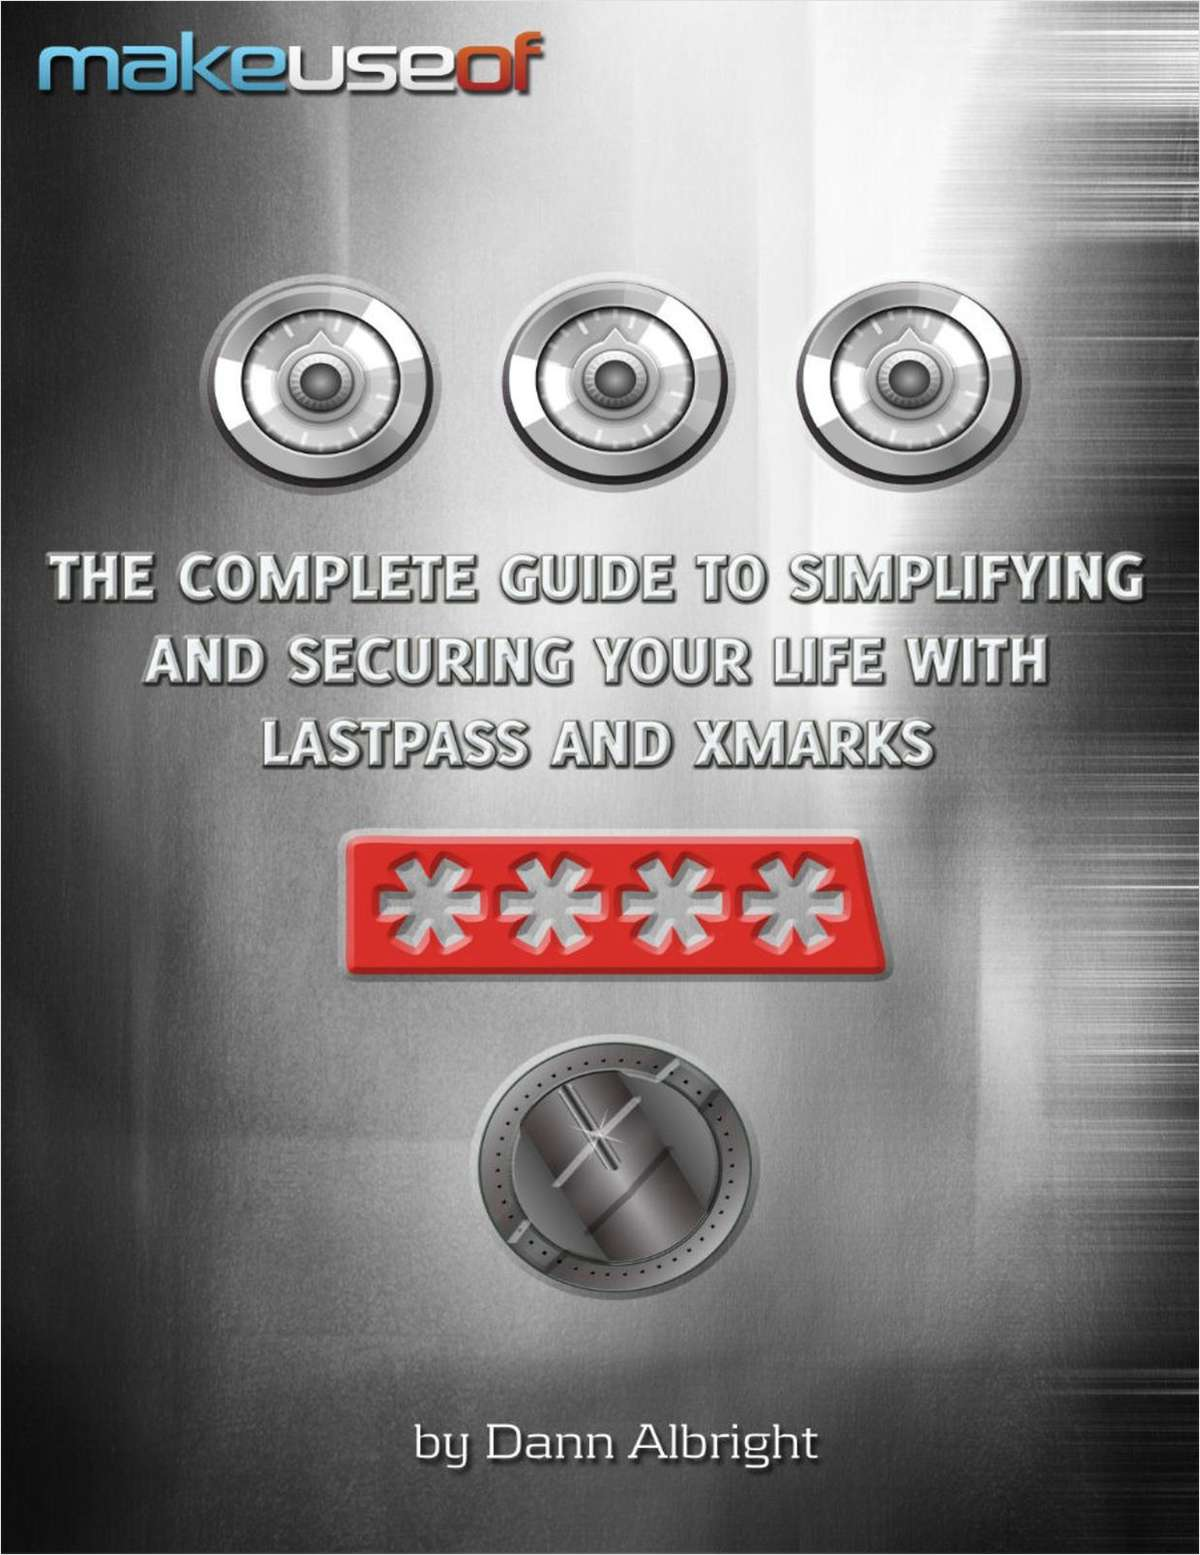 The Complete Guide to Simplifying and Securing Your Life with LastPass and Xmarks